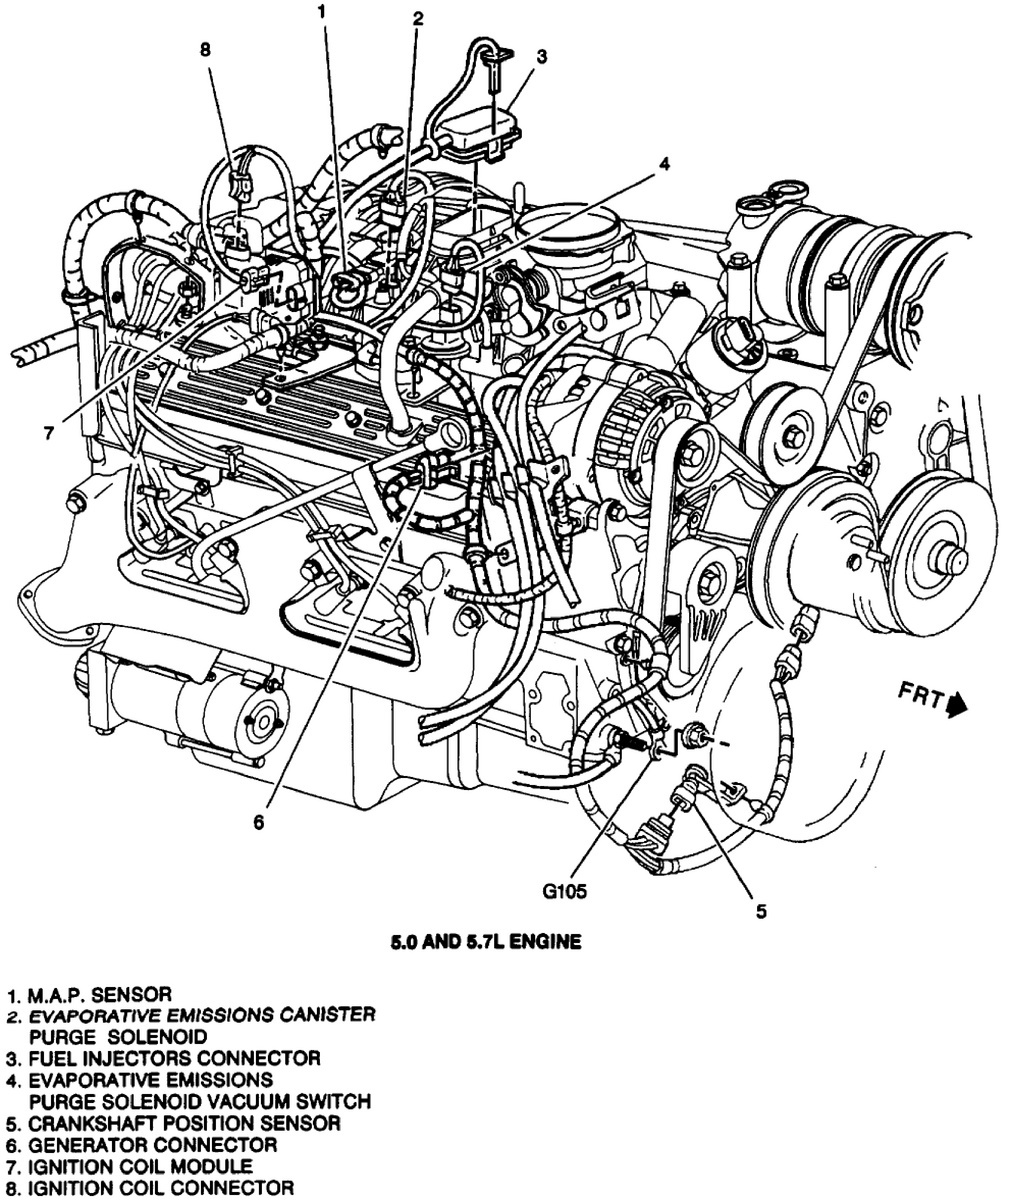 Chevrolet Corsica Questions Where Is Crankshaft Sensor On Chevy. Chevrolet. 93 Chevy K1500 Engine Diagram At Scoala.co